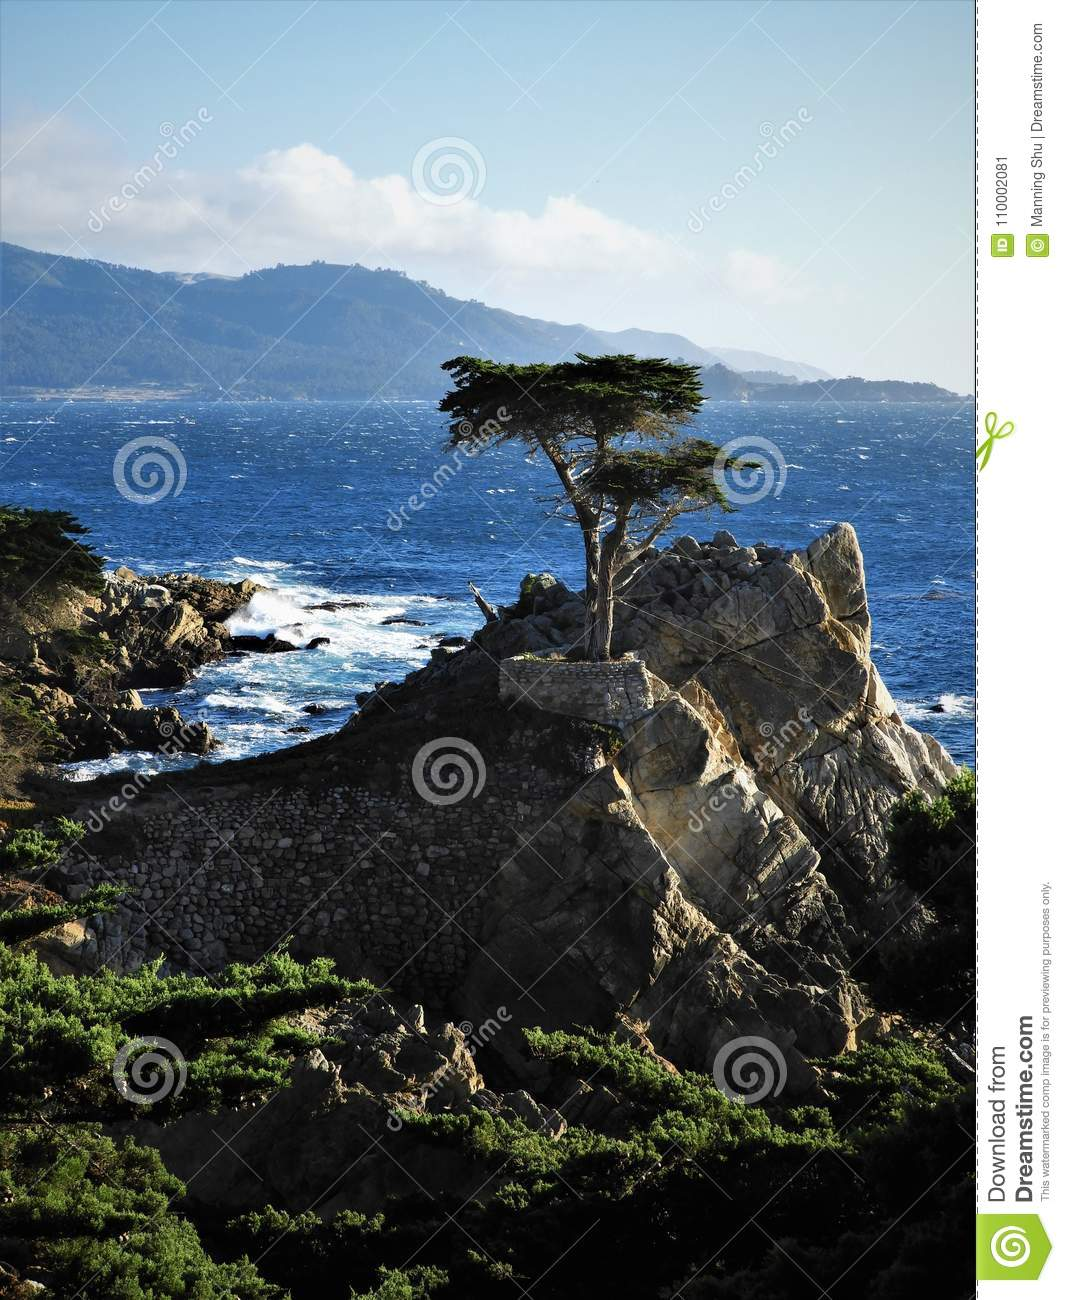 Cypress solitario en Pebble Beach en California